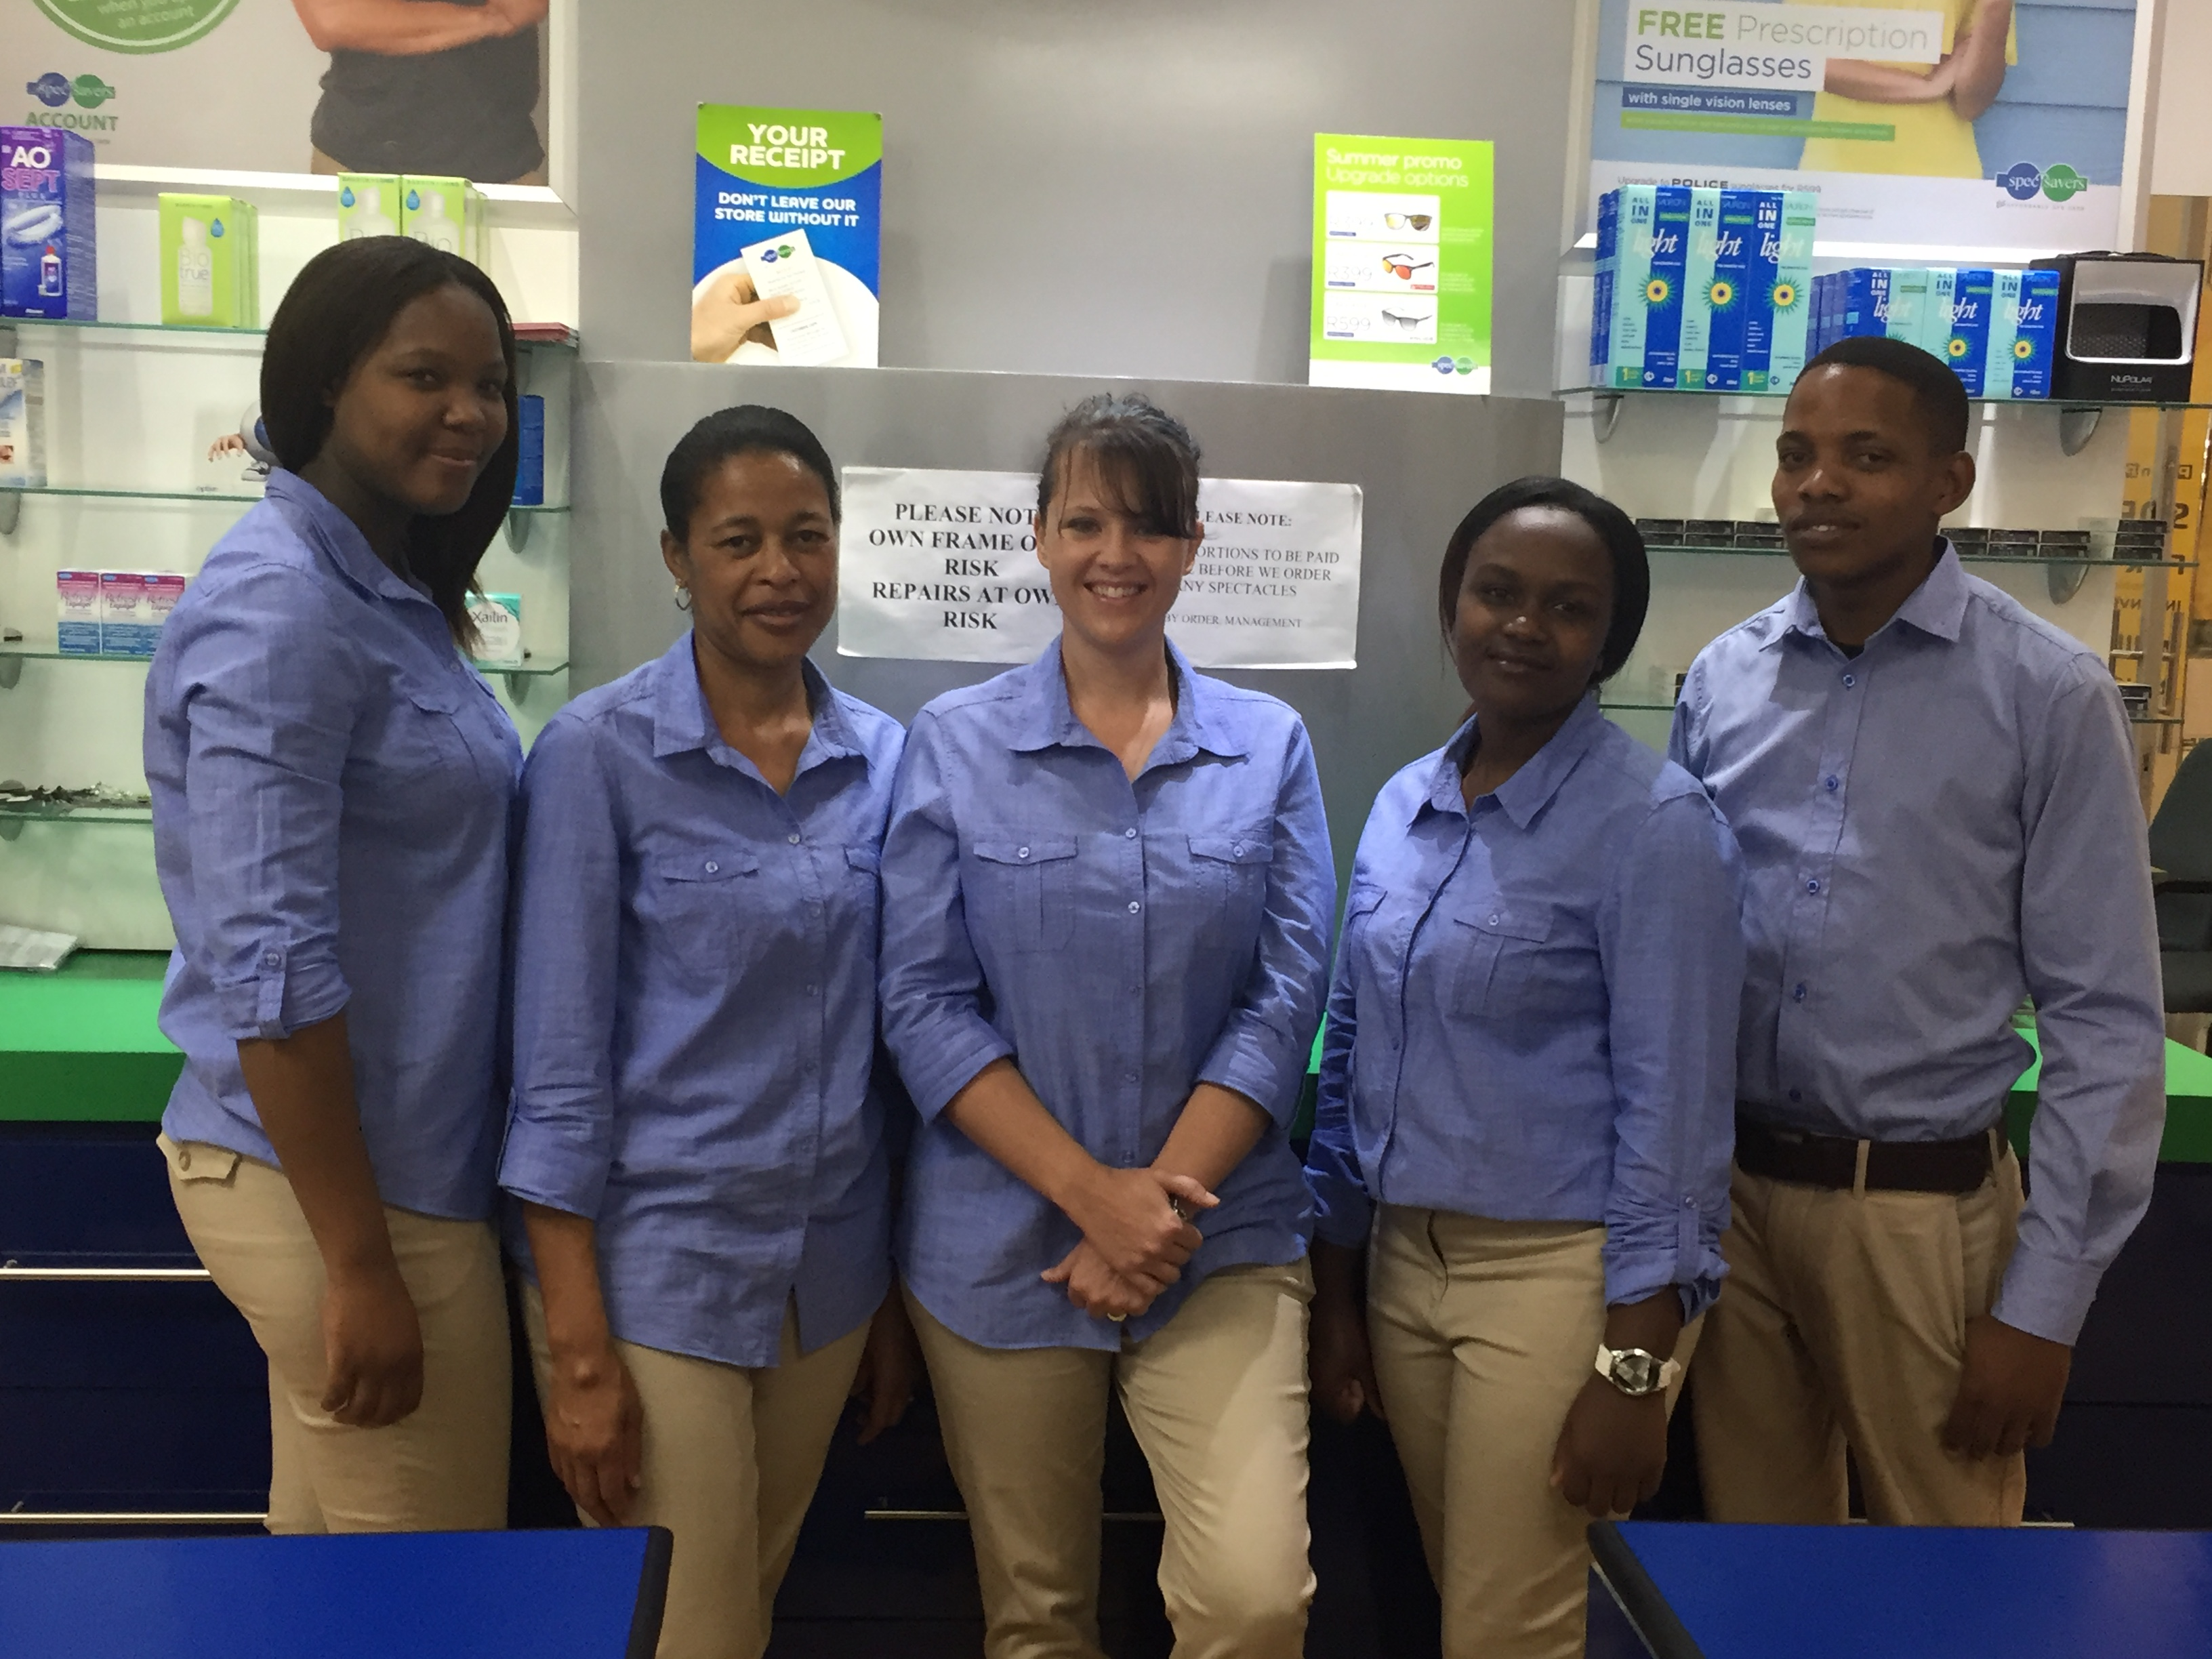 Spec-Savers The Boulders staff - from left to right, Melissa Skarnek, Edith Dhludhlu, Rolean Beets, Busisiwe Quolodashe and Pule Molofane.